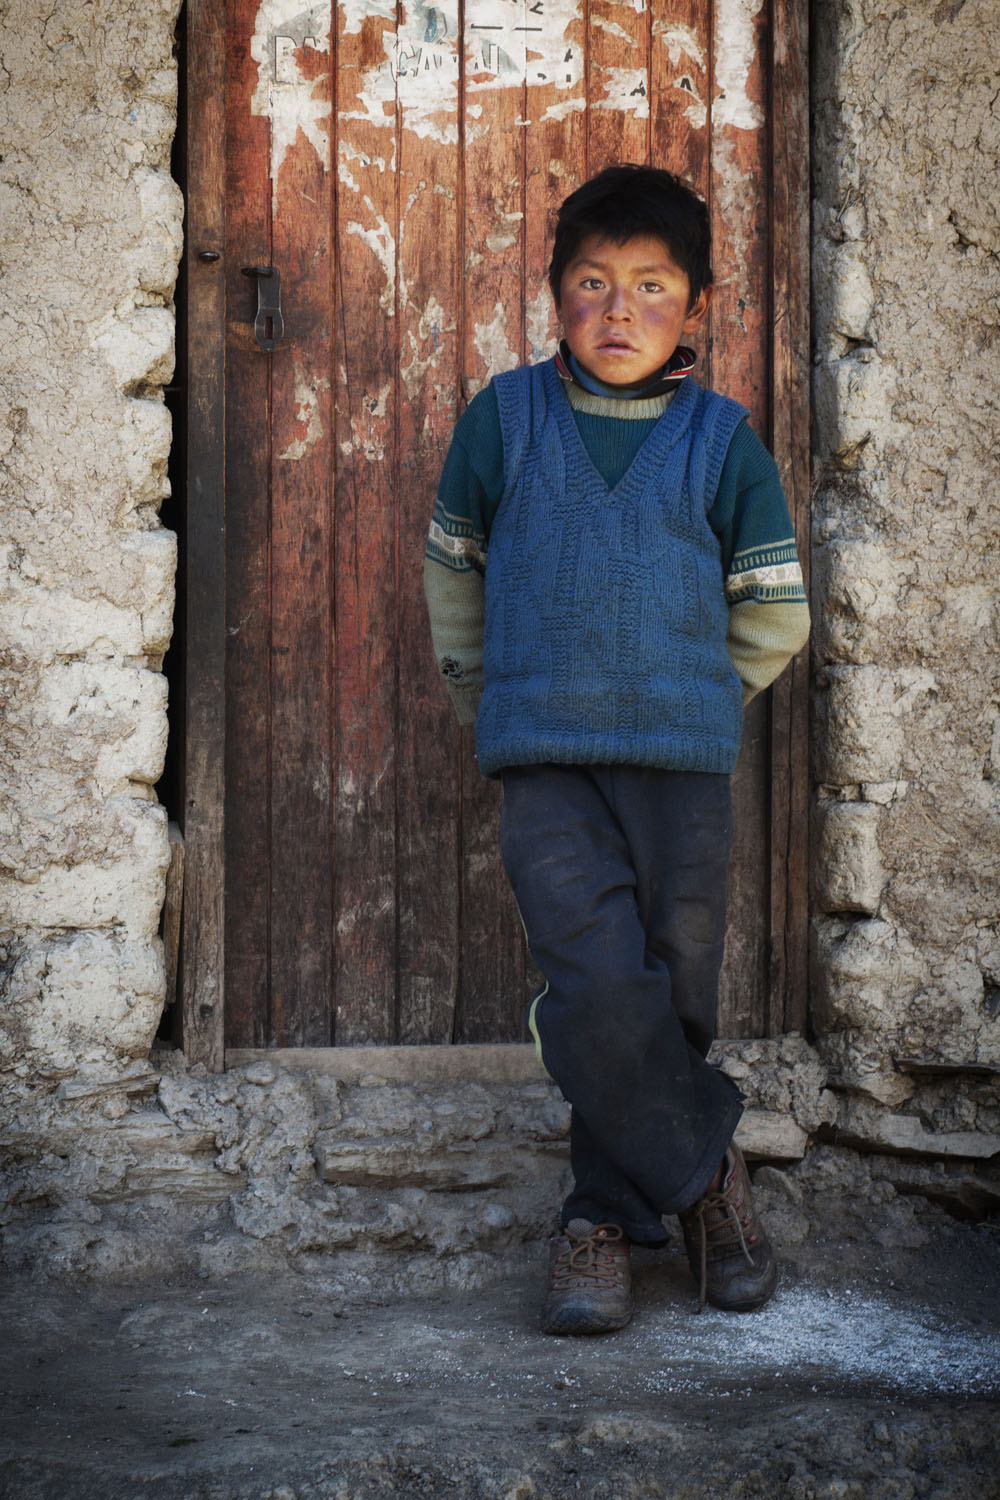 Boy at his Front Door